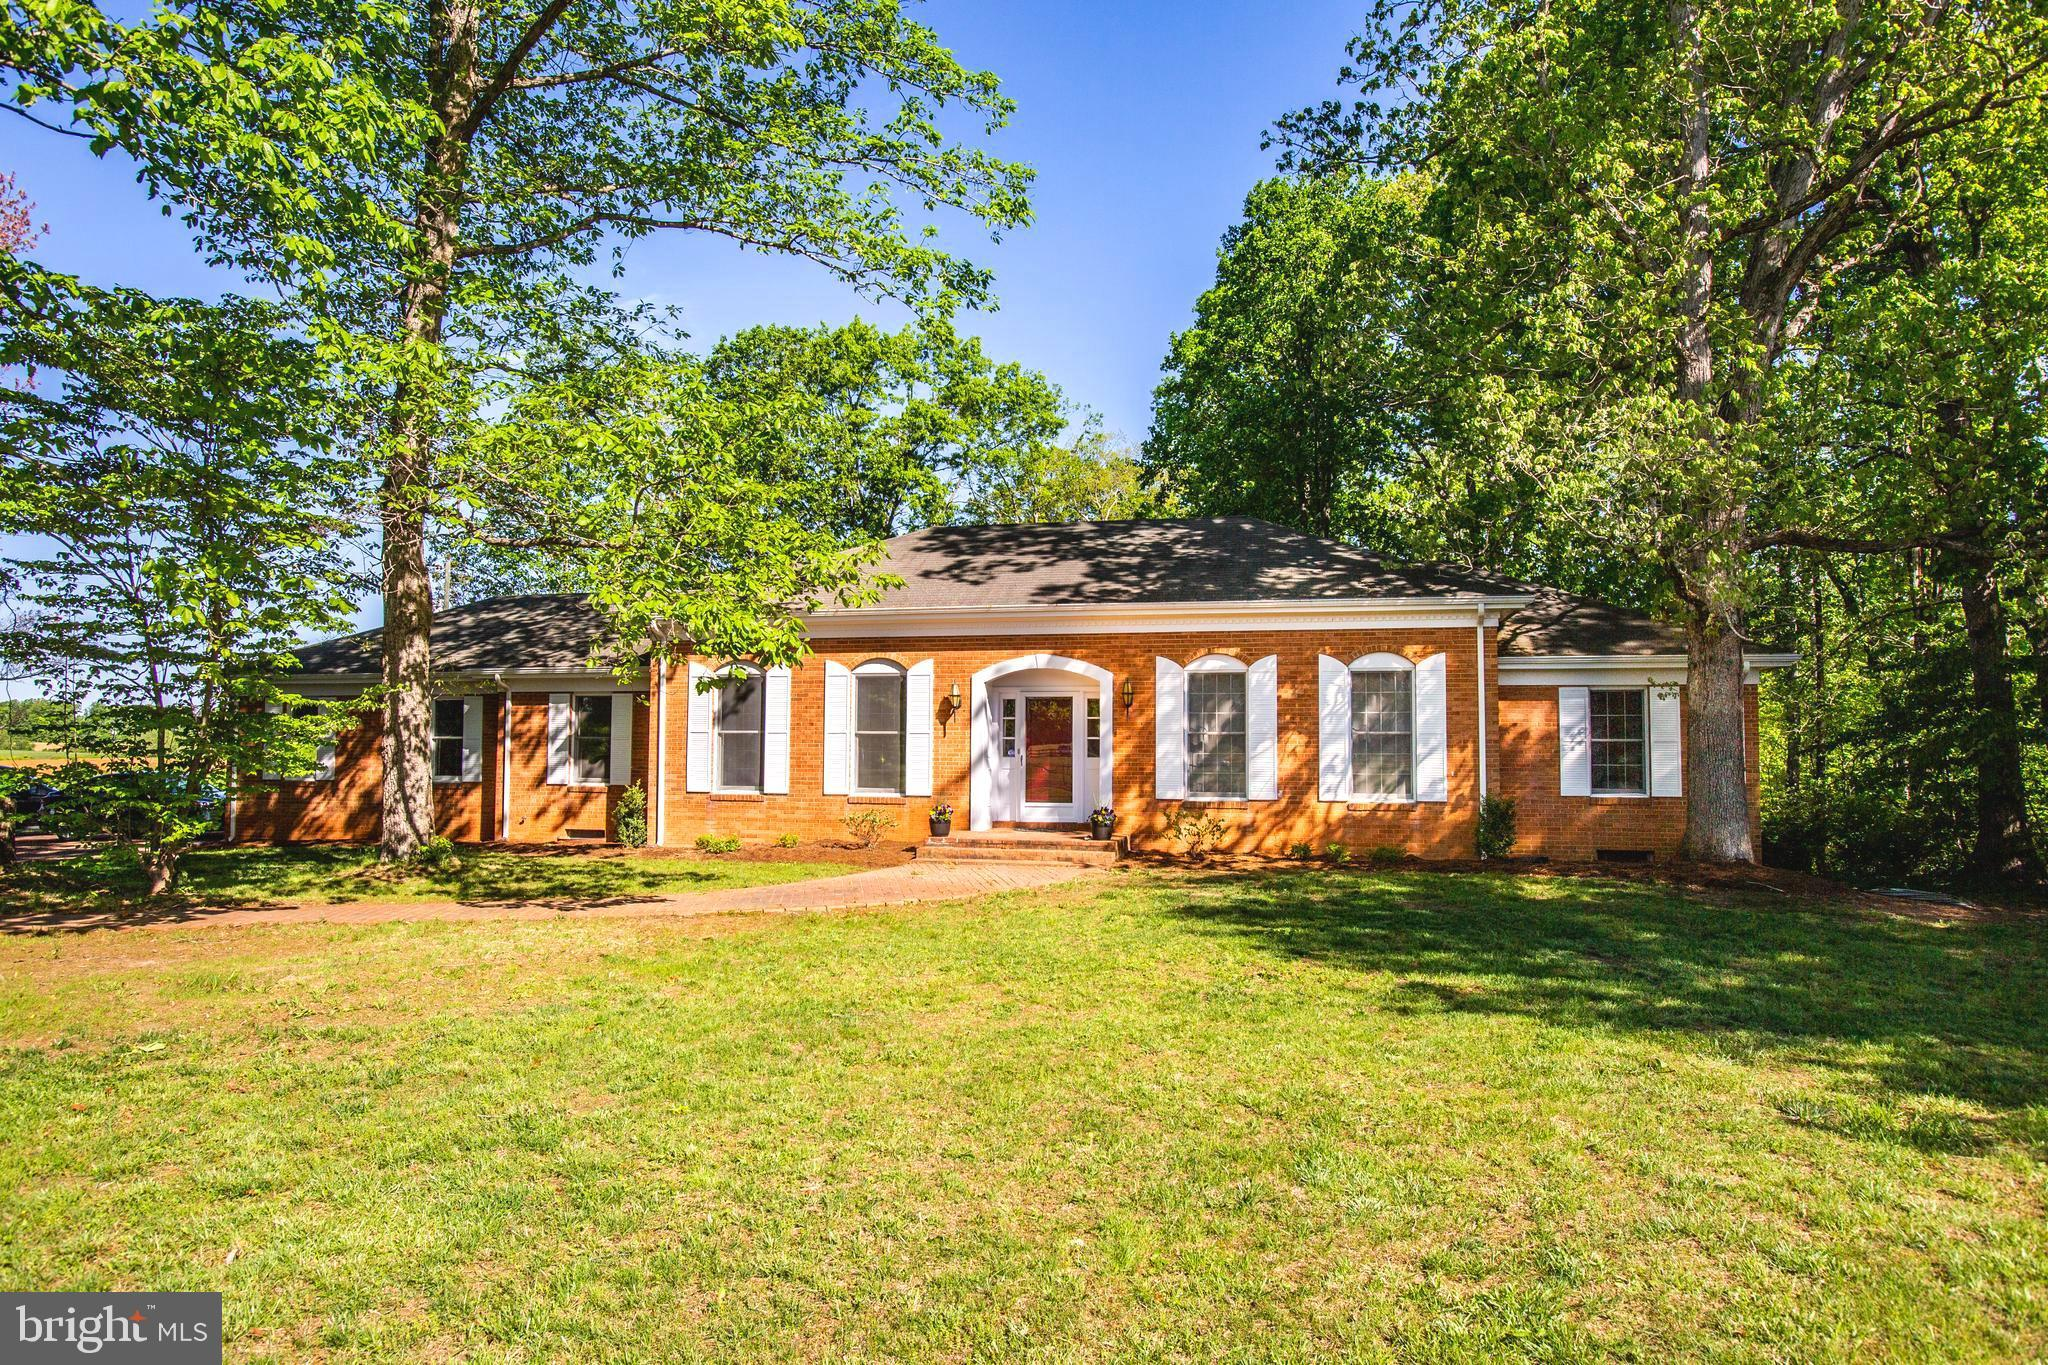 27405 CONSTITUTION HIGHWAY, RHOADESVILLE, VA 22542